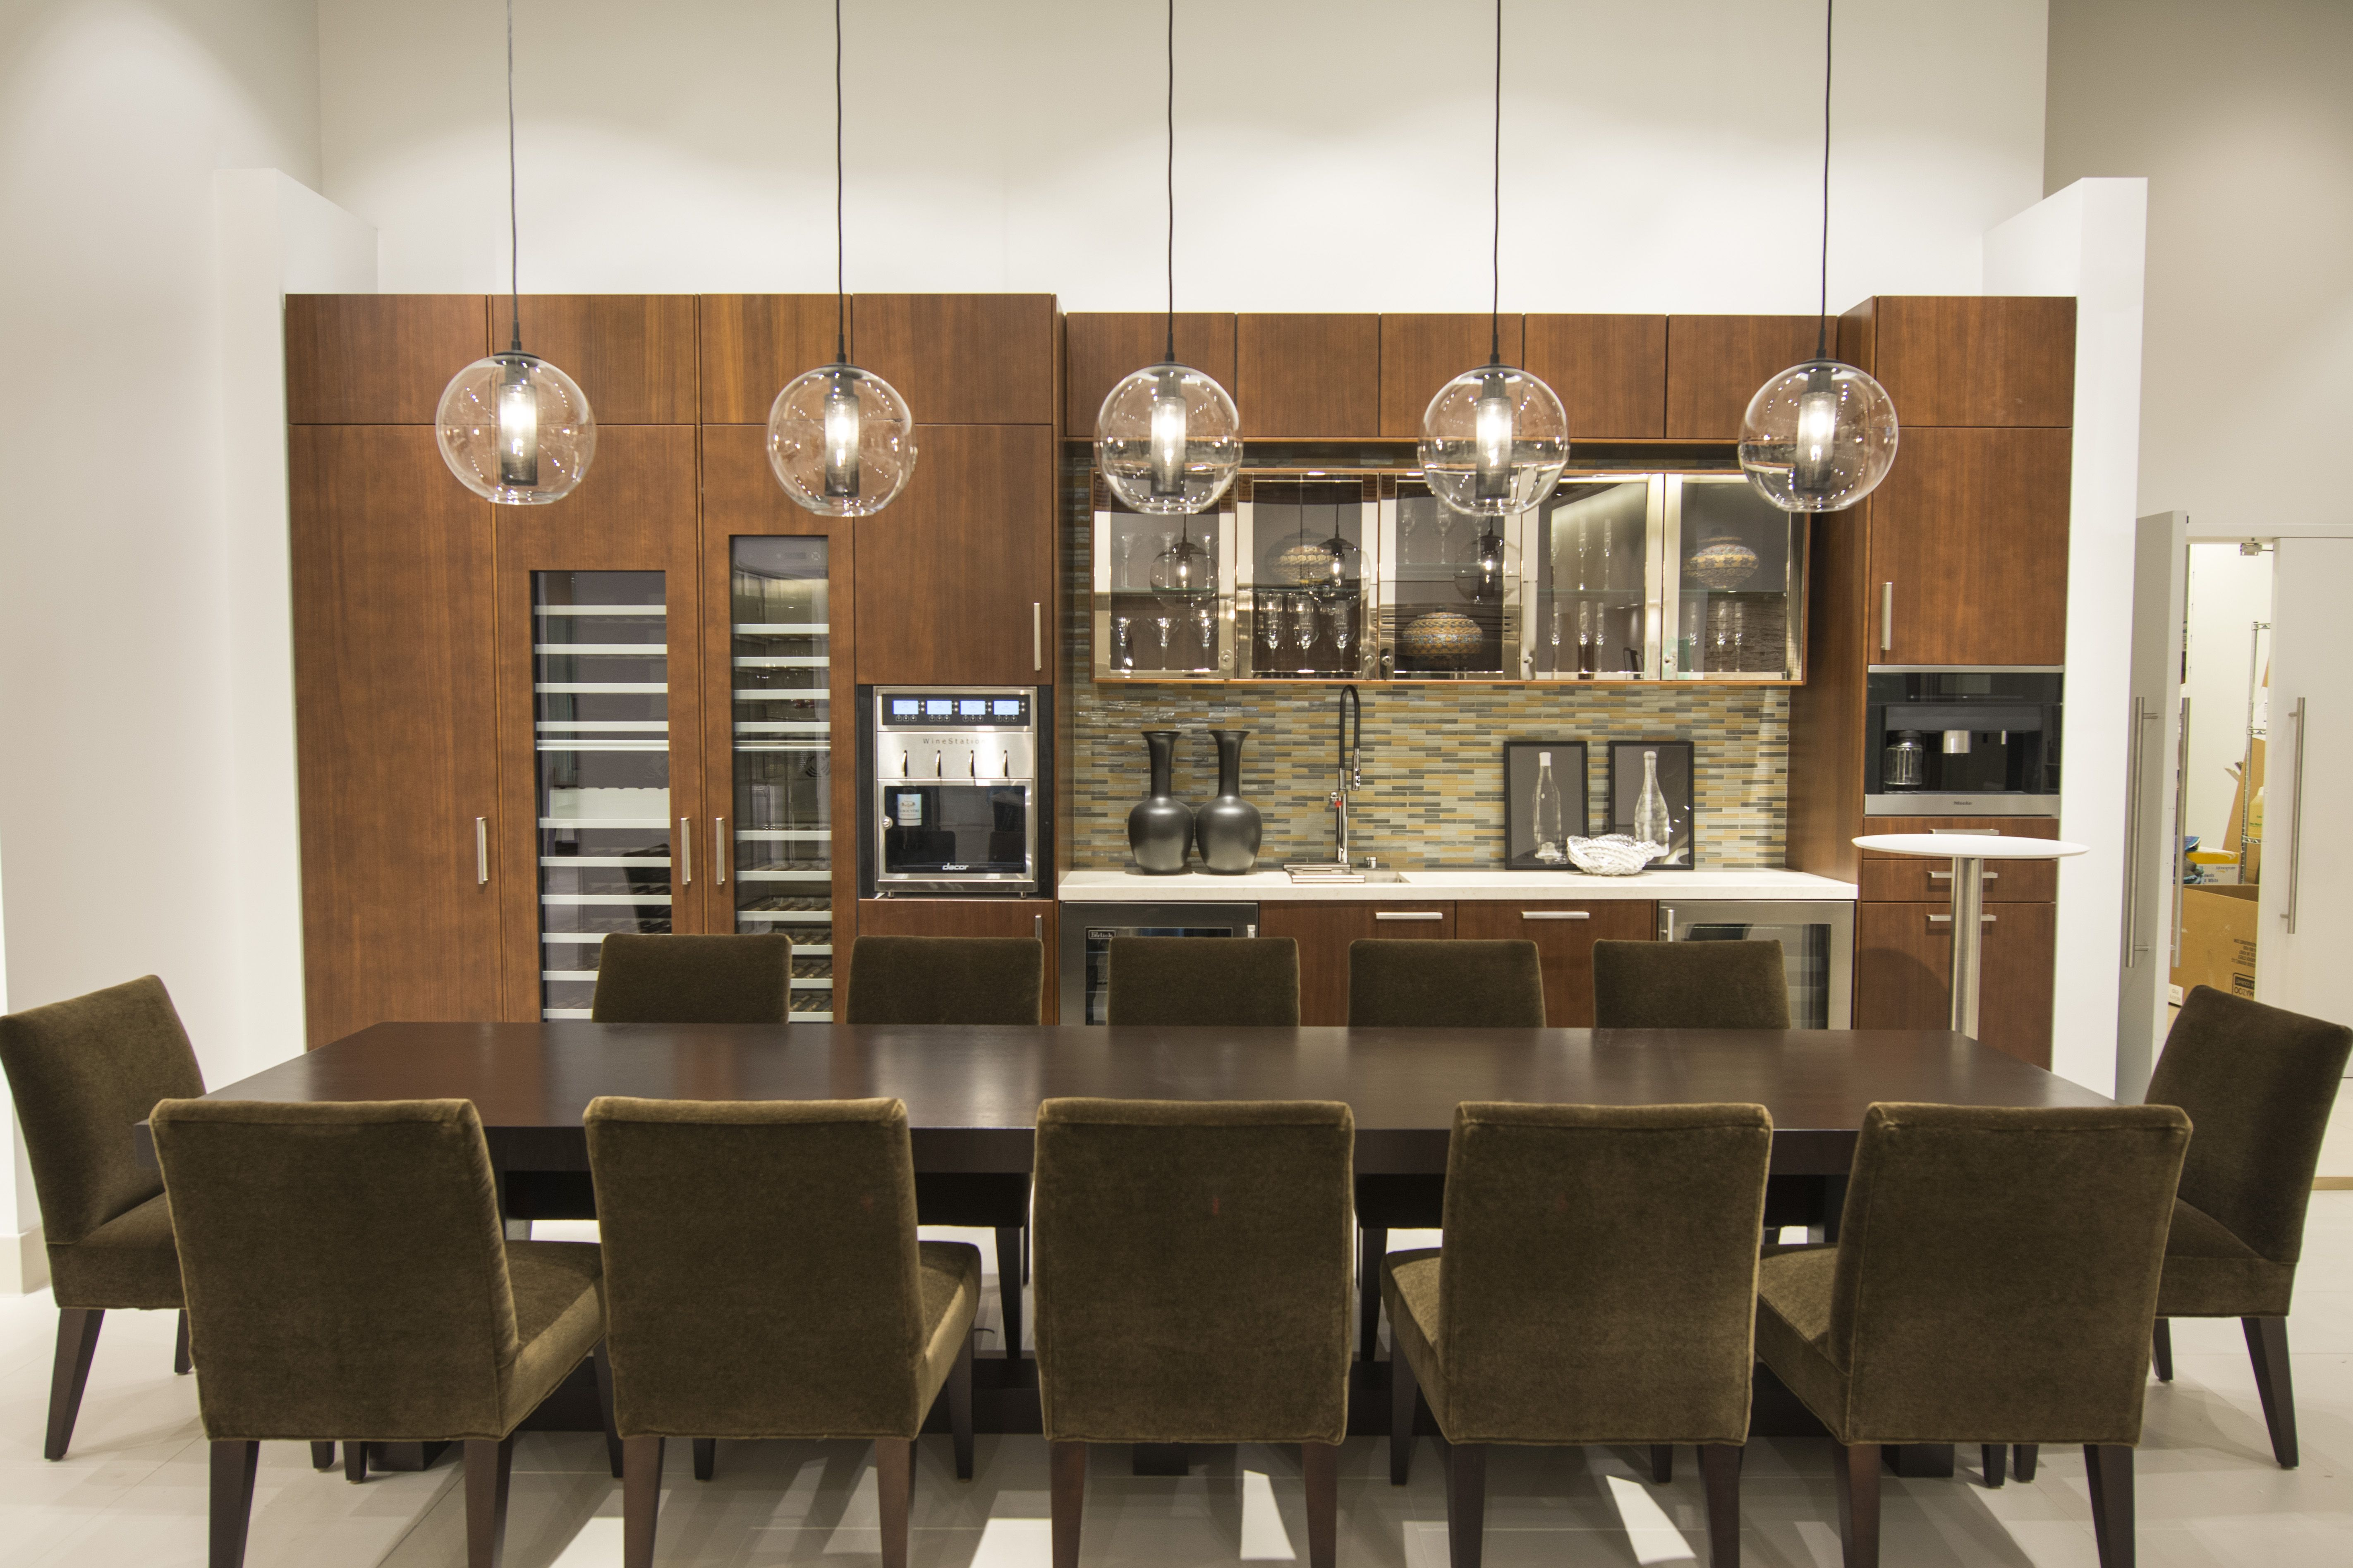 Kitchen display at pirch atlanta featuring products by for Pirch atlanta